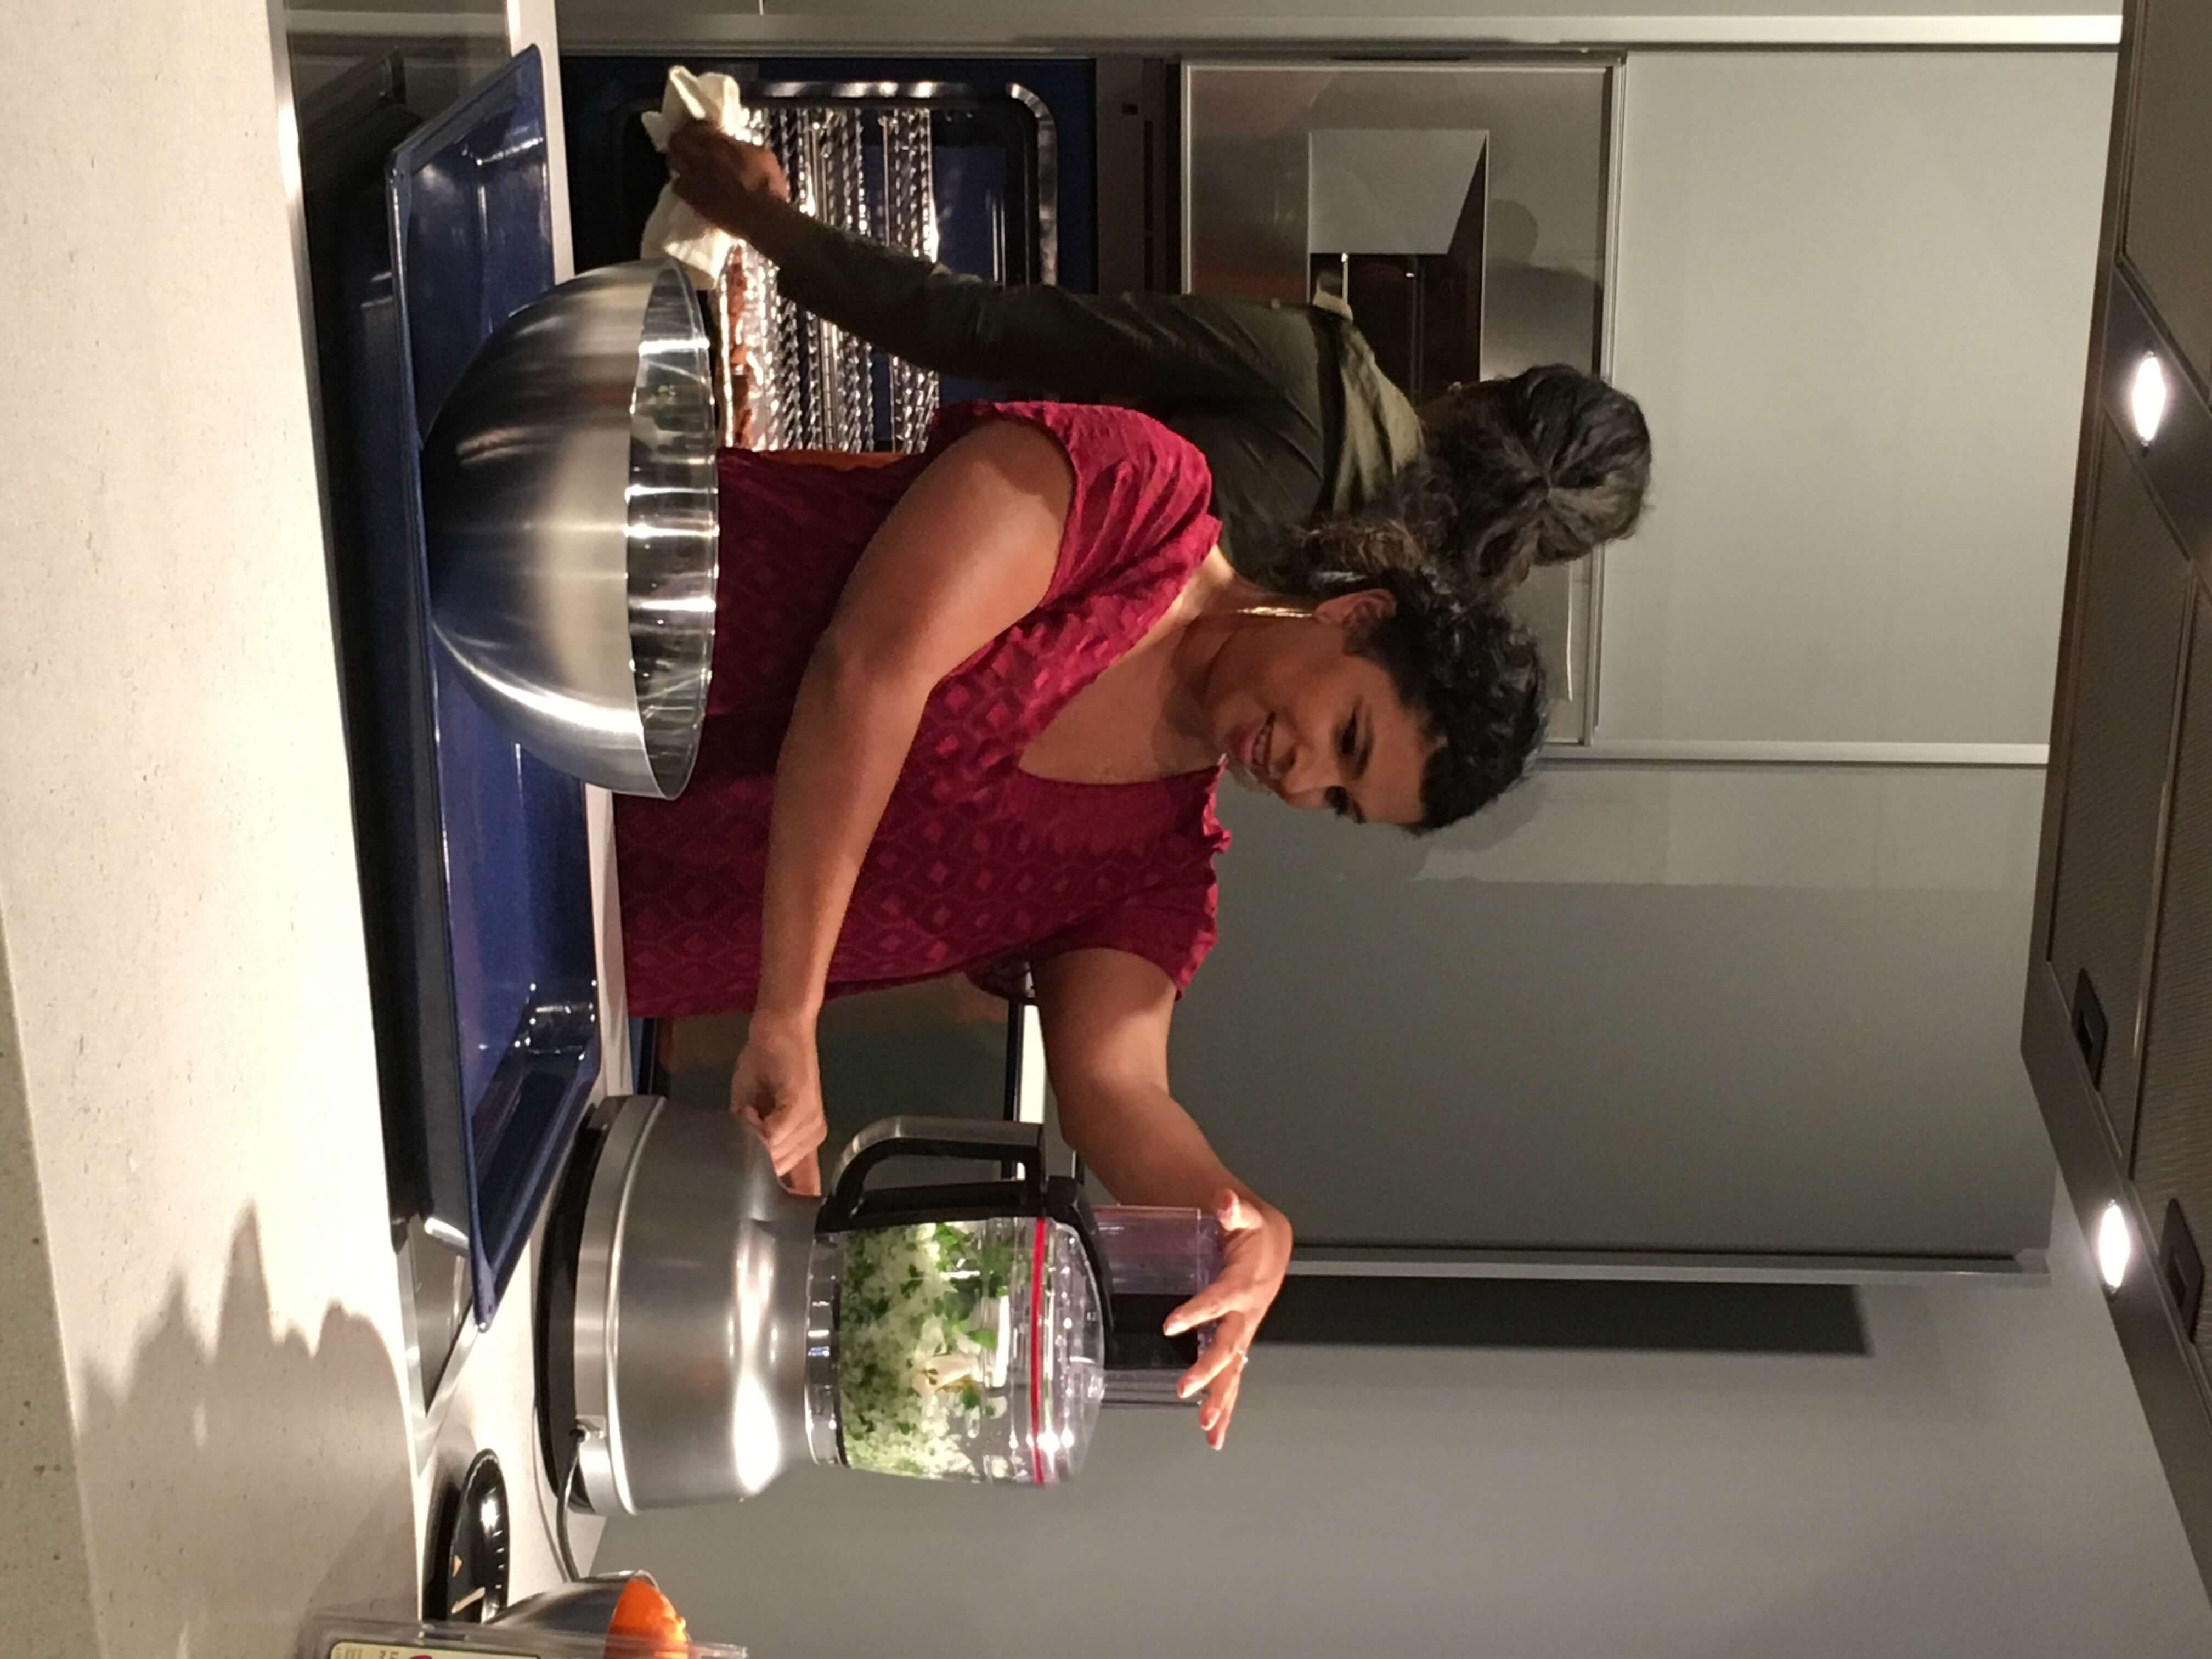 Chef Aarti Sequeira demonstrates making Arais, a Middle Eastern meat-stuffed bread. Delicious and surprisingly easy to make!